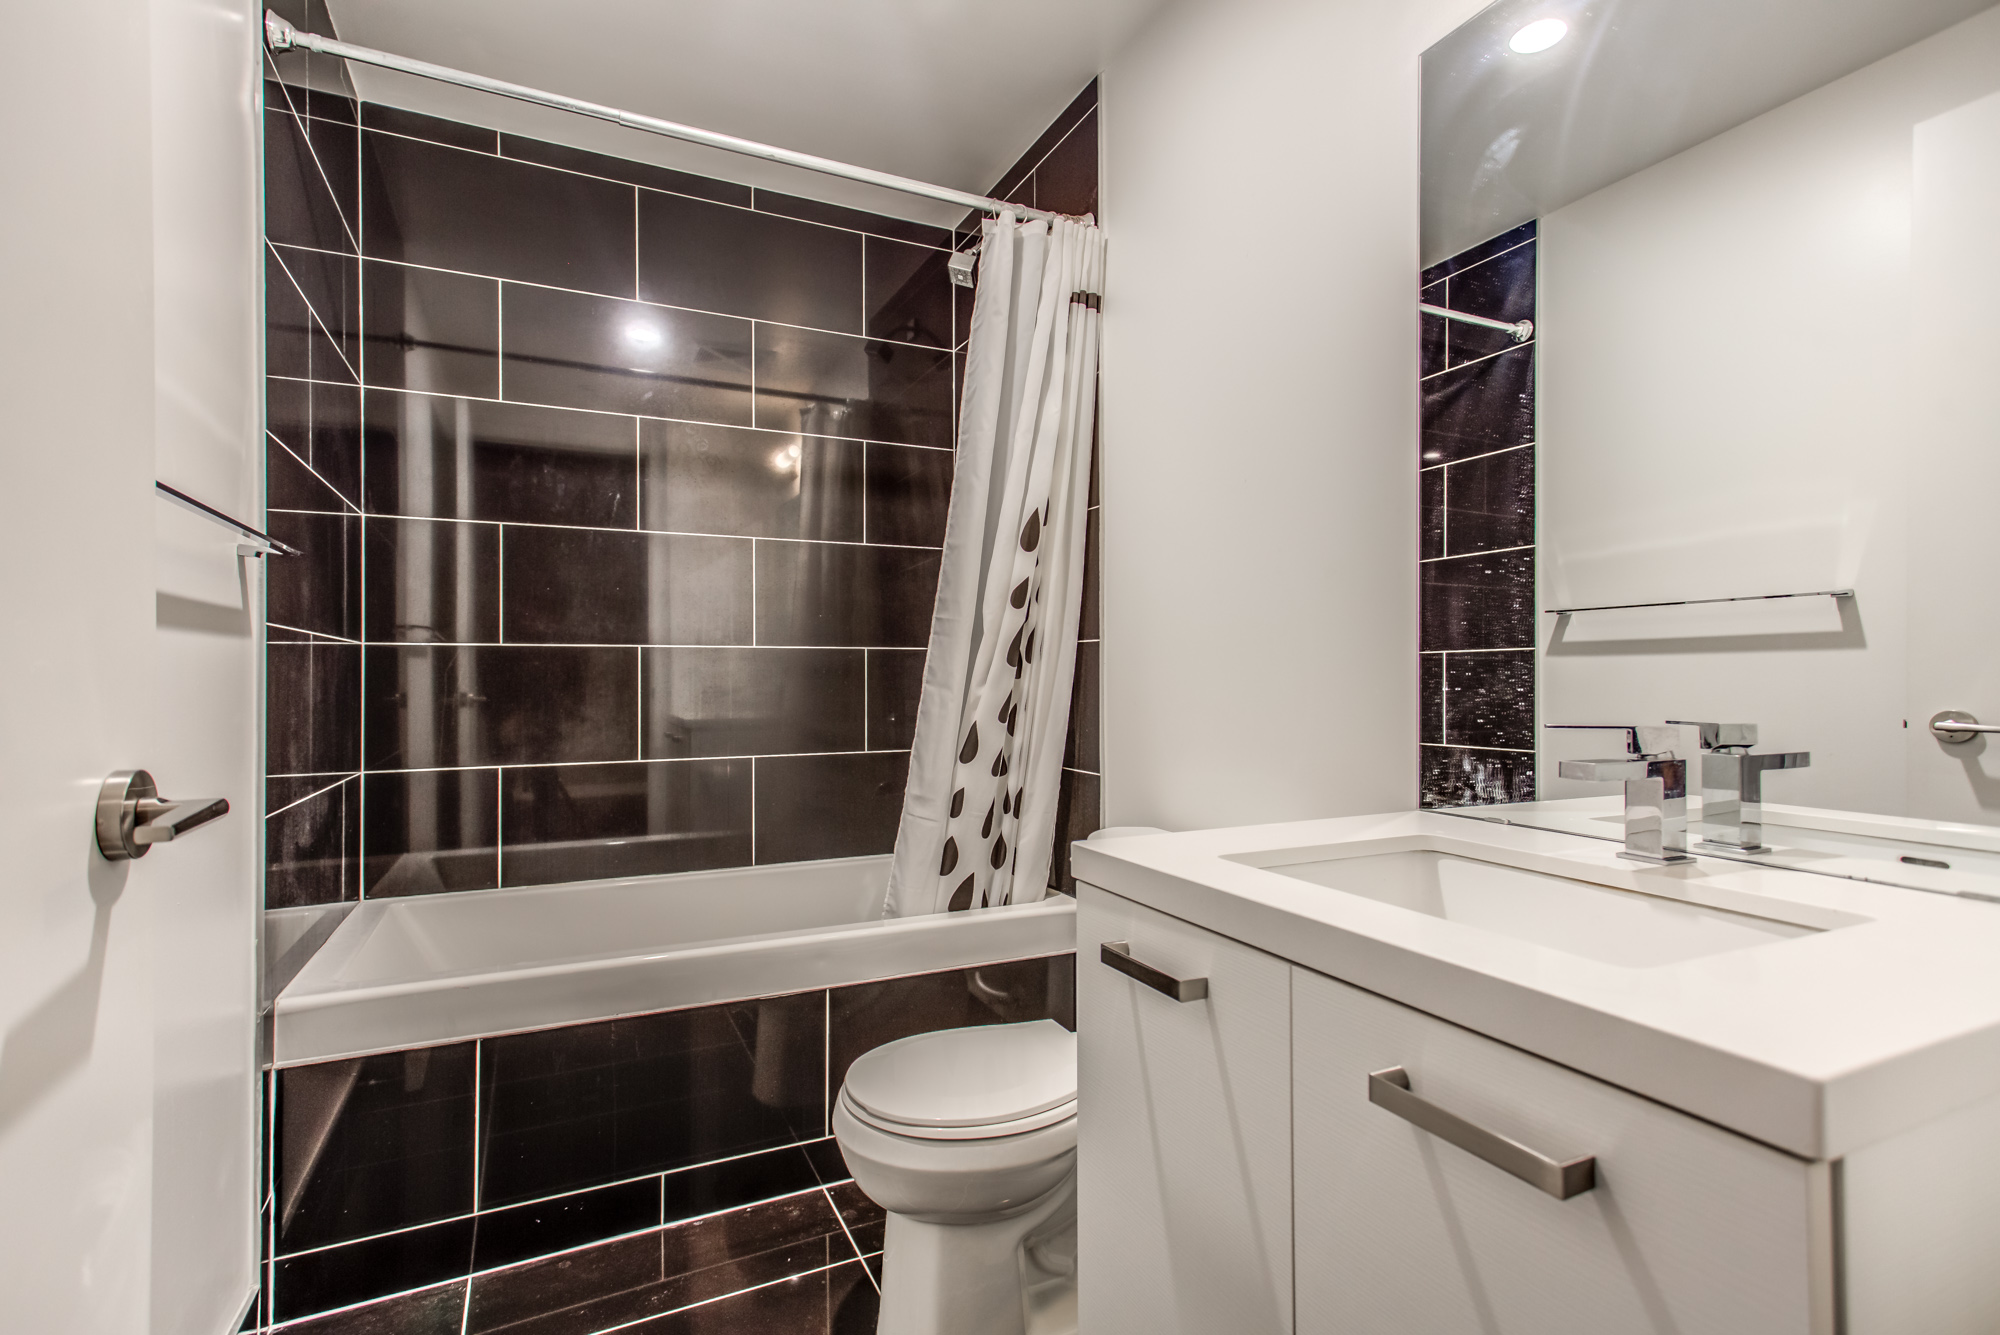 39 Brant St Unit 918 washroom with large, rectangular polished black tiles and gray and white colours.